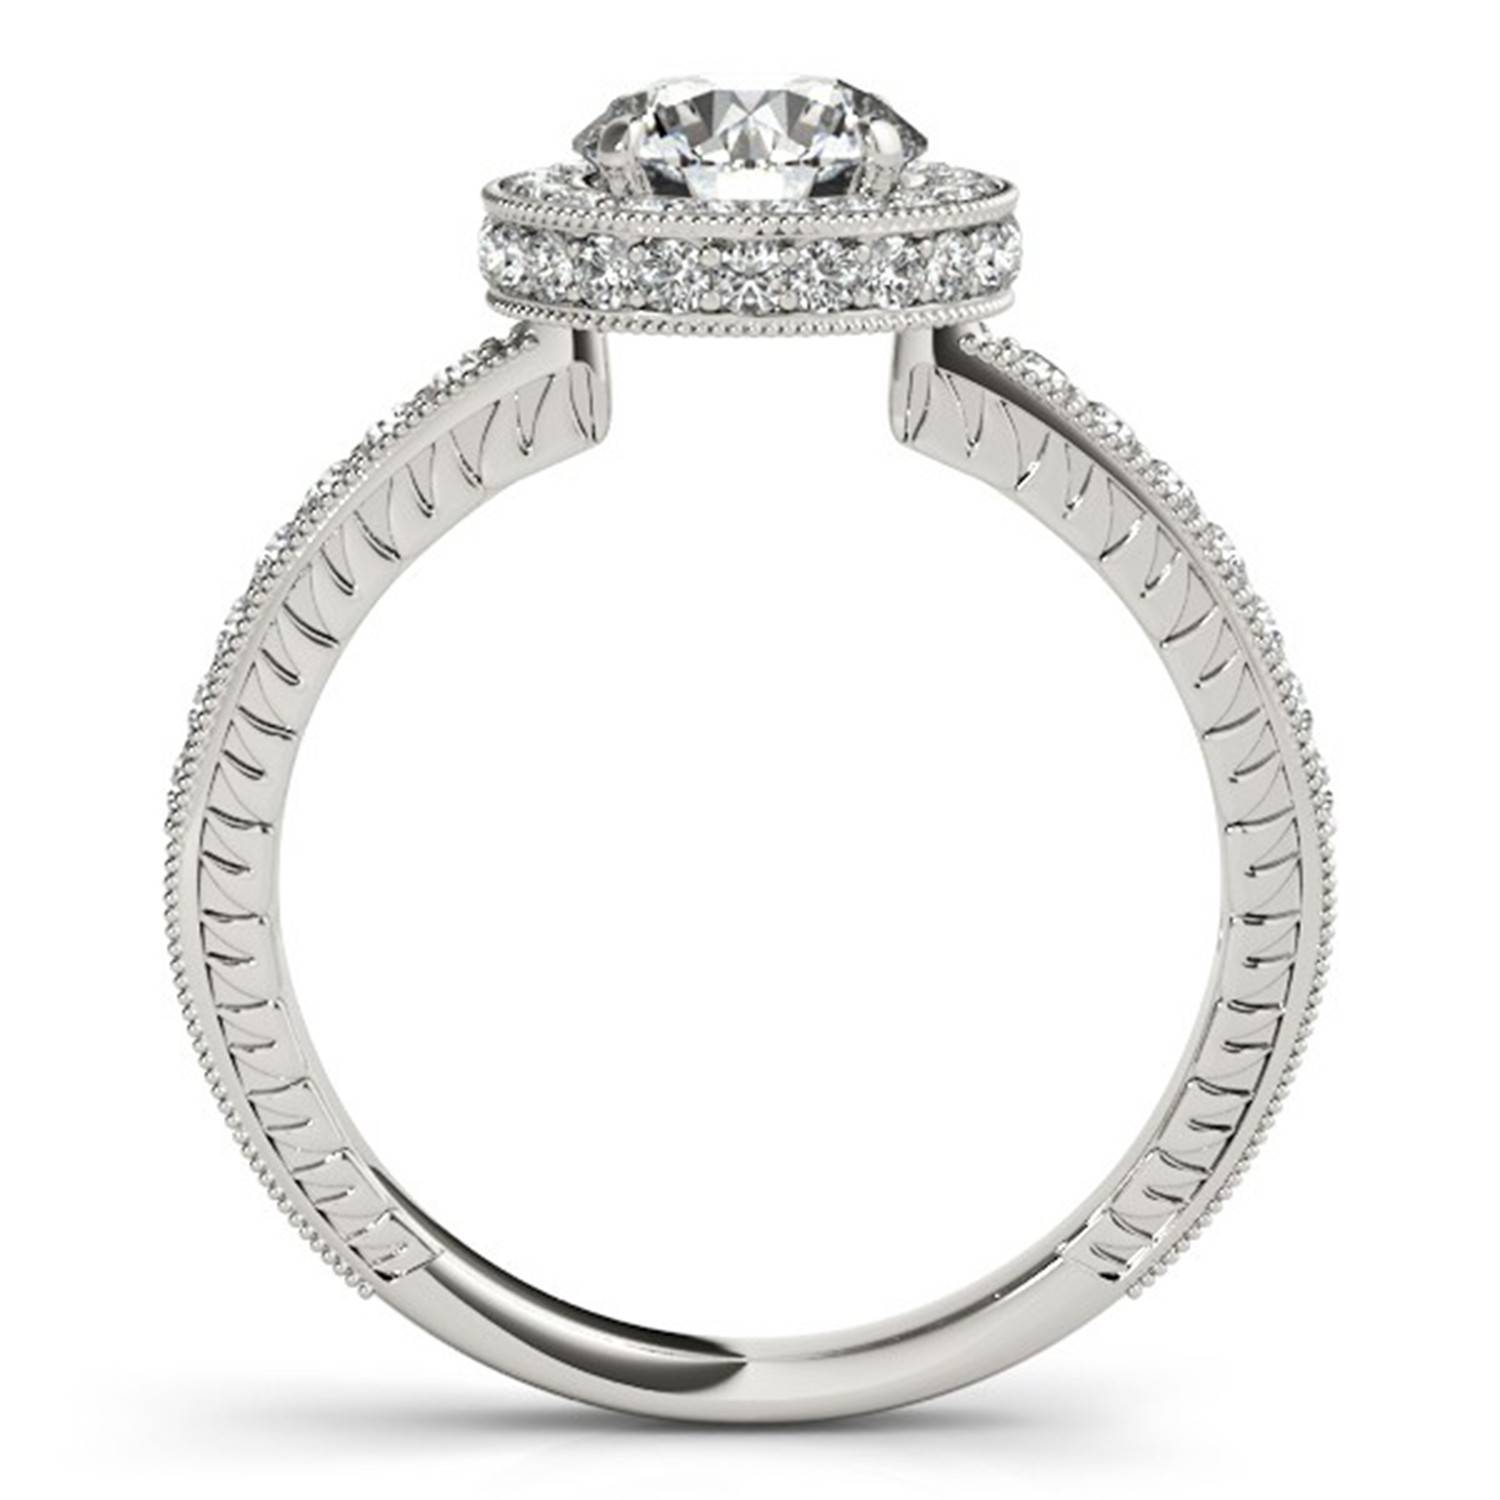 Wedding Rings Create My Ring Build Own Your With Regard To